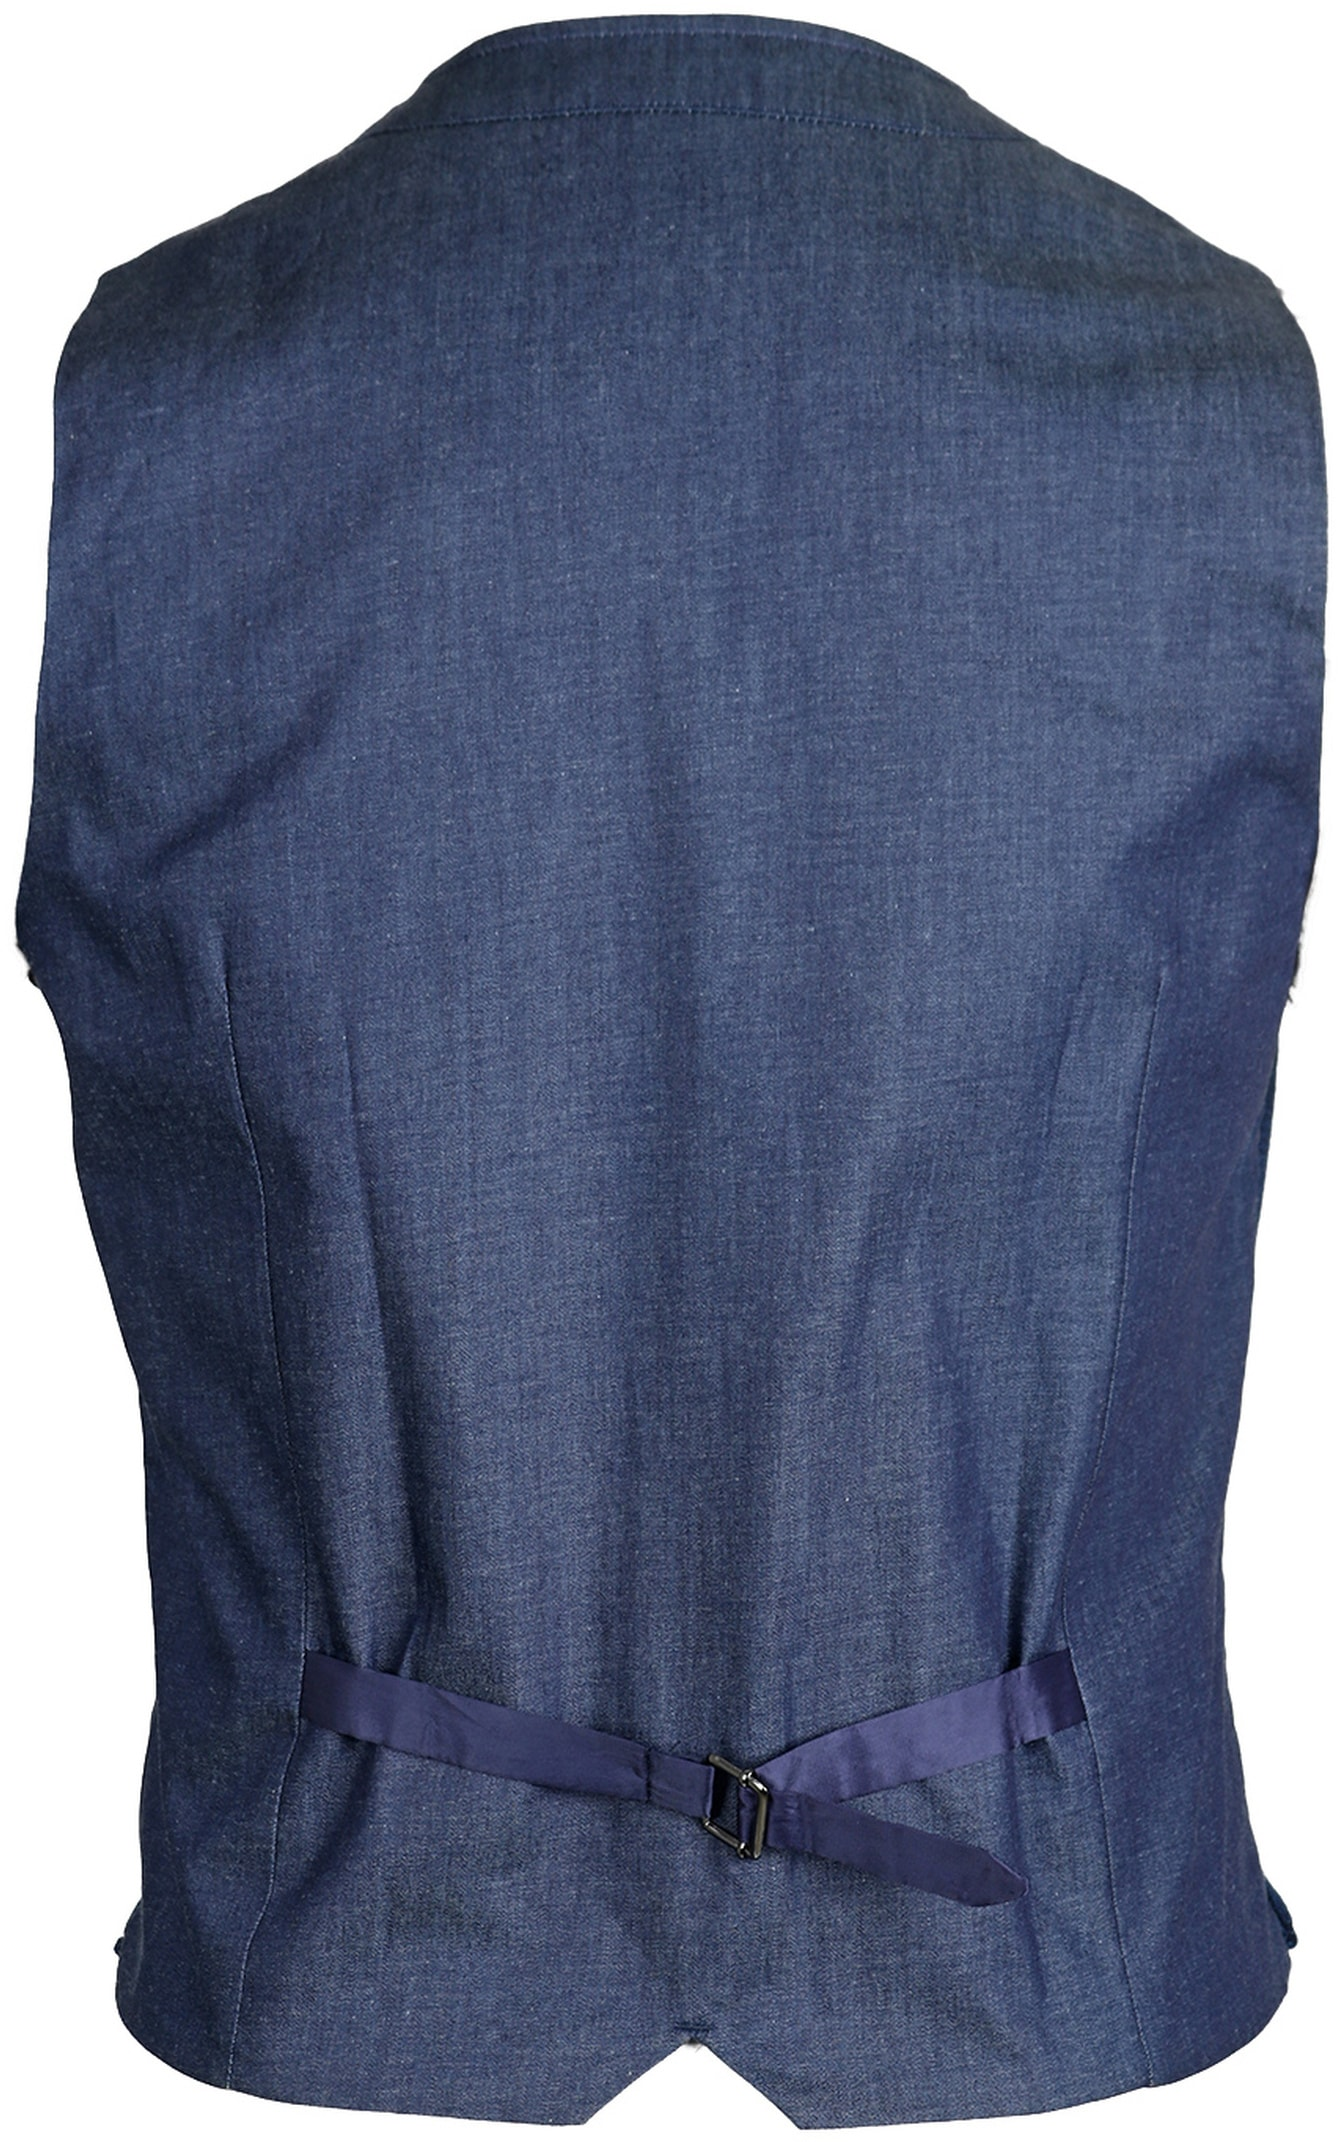 Suitable Gilet Ruit Navy foto 1